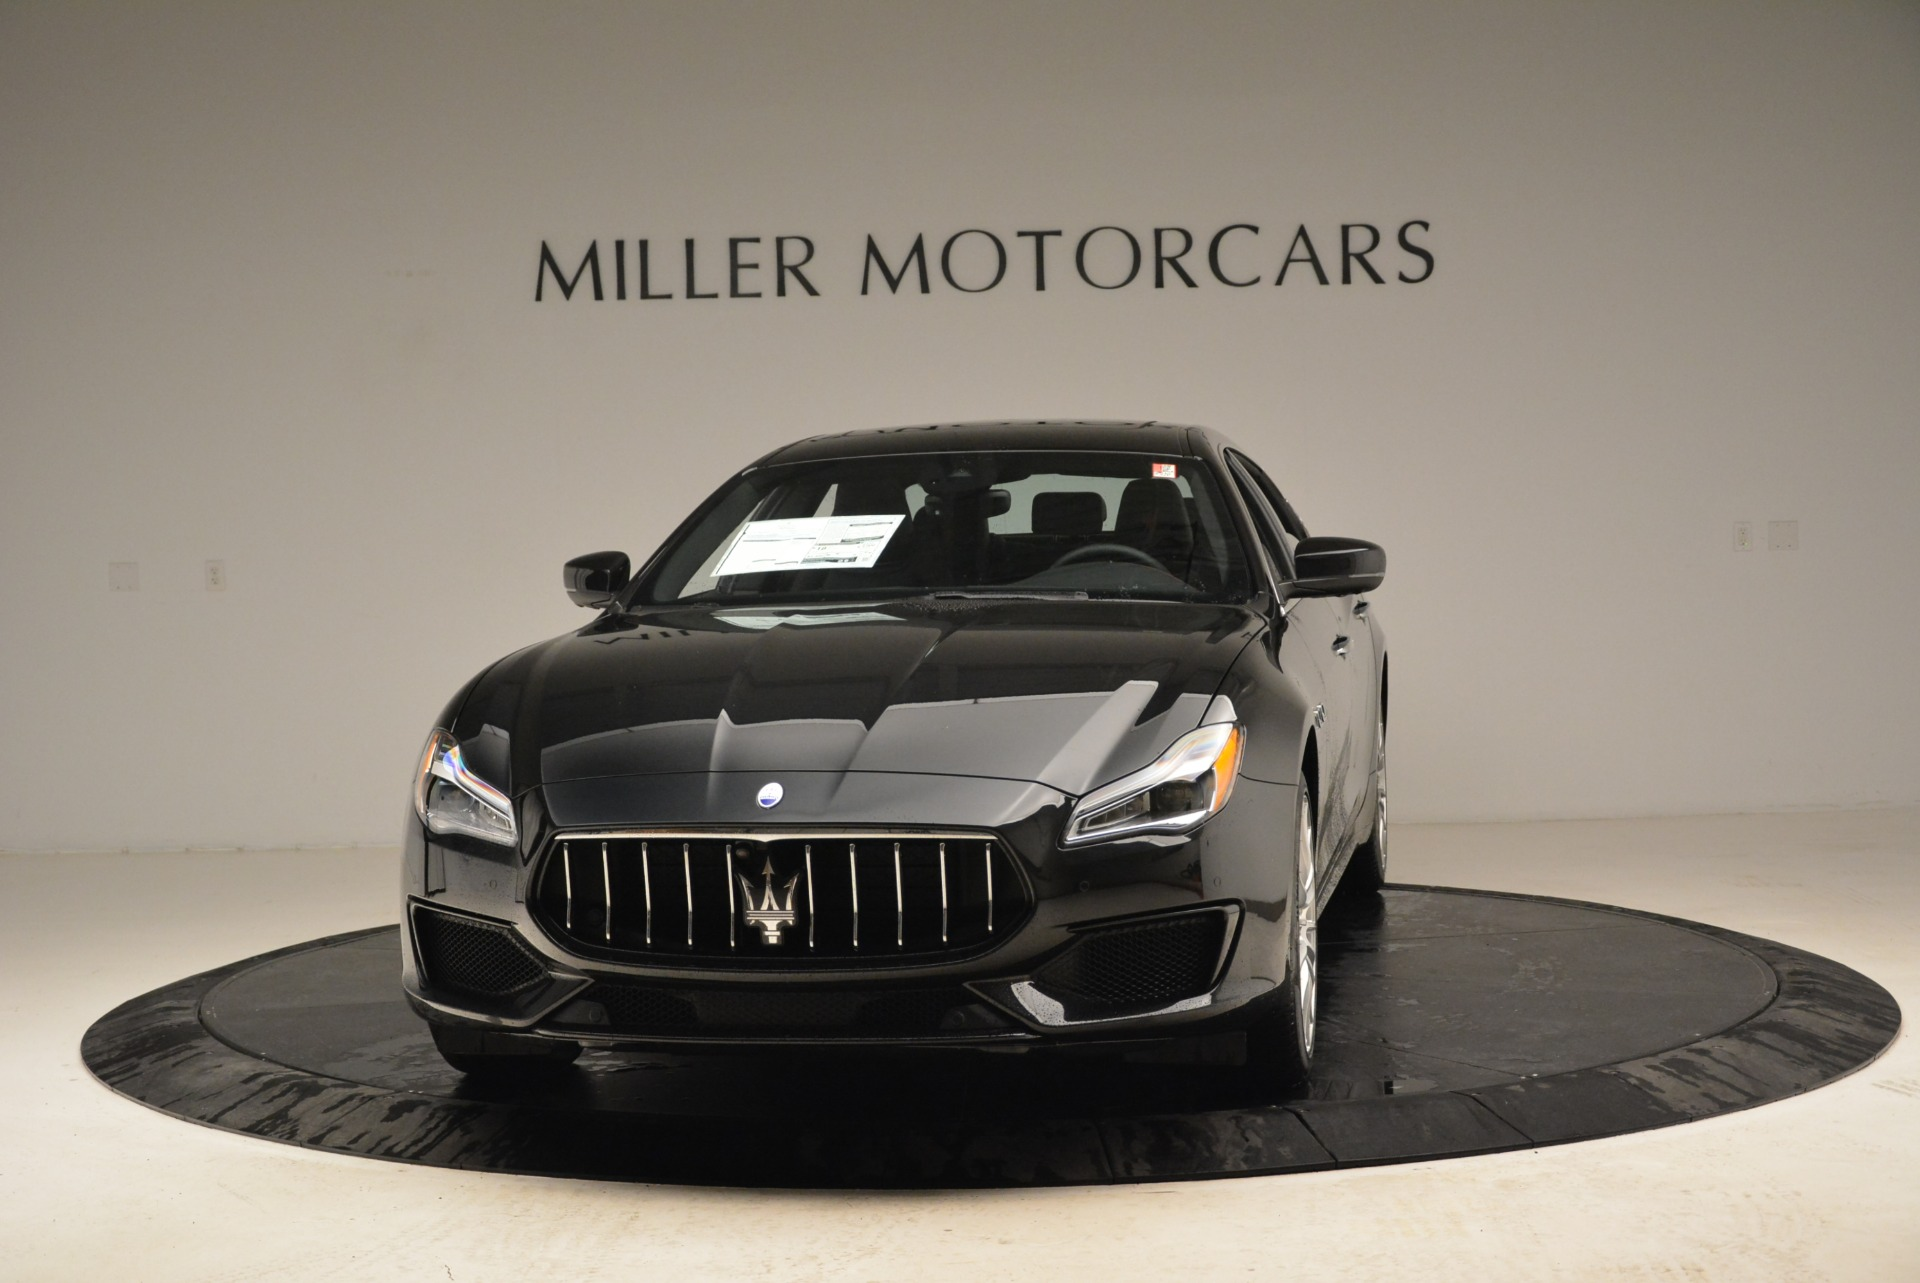 New 2018 Maserati Quattroporte S Q4 Gransport for sale Sold at Bentley Greenwich in Greenwich CT 06830 1